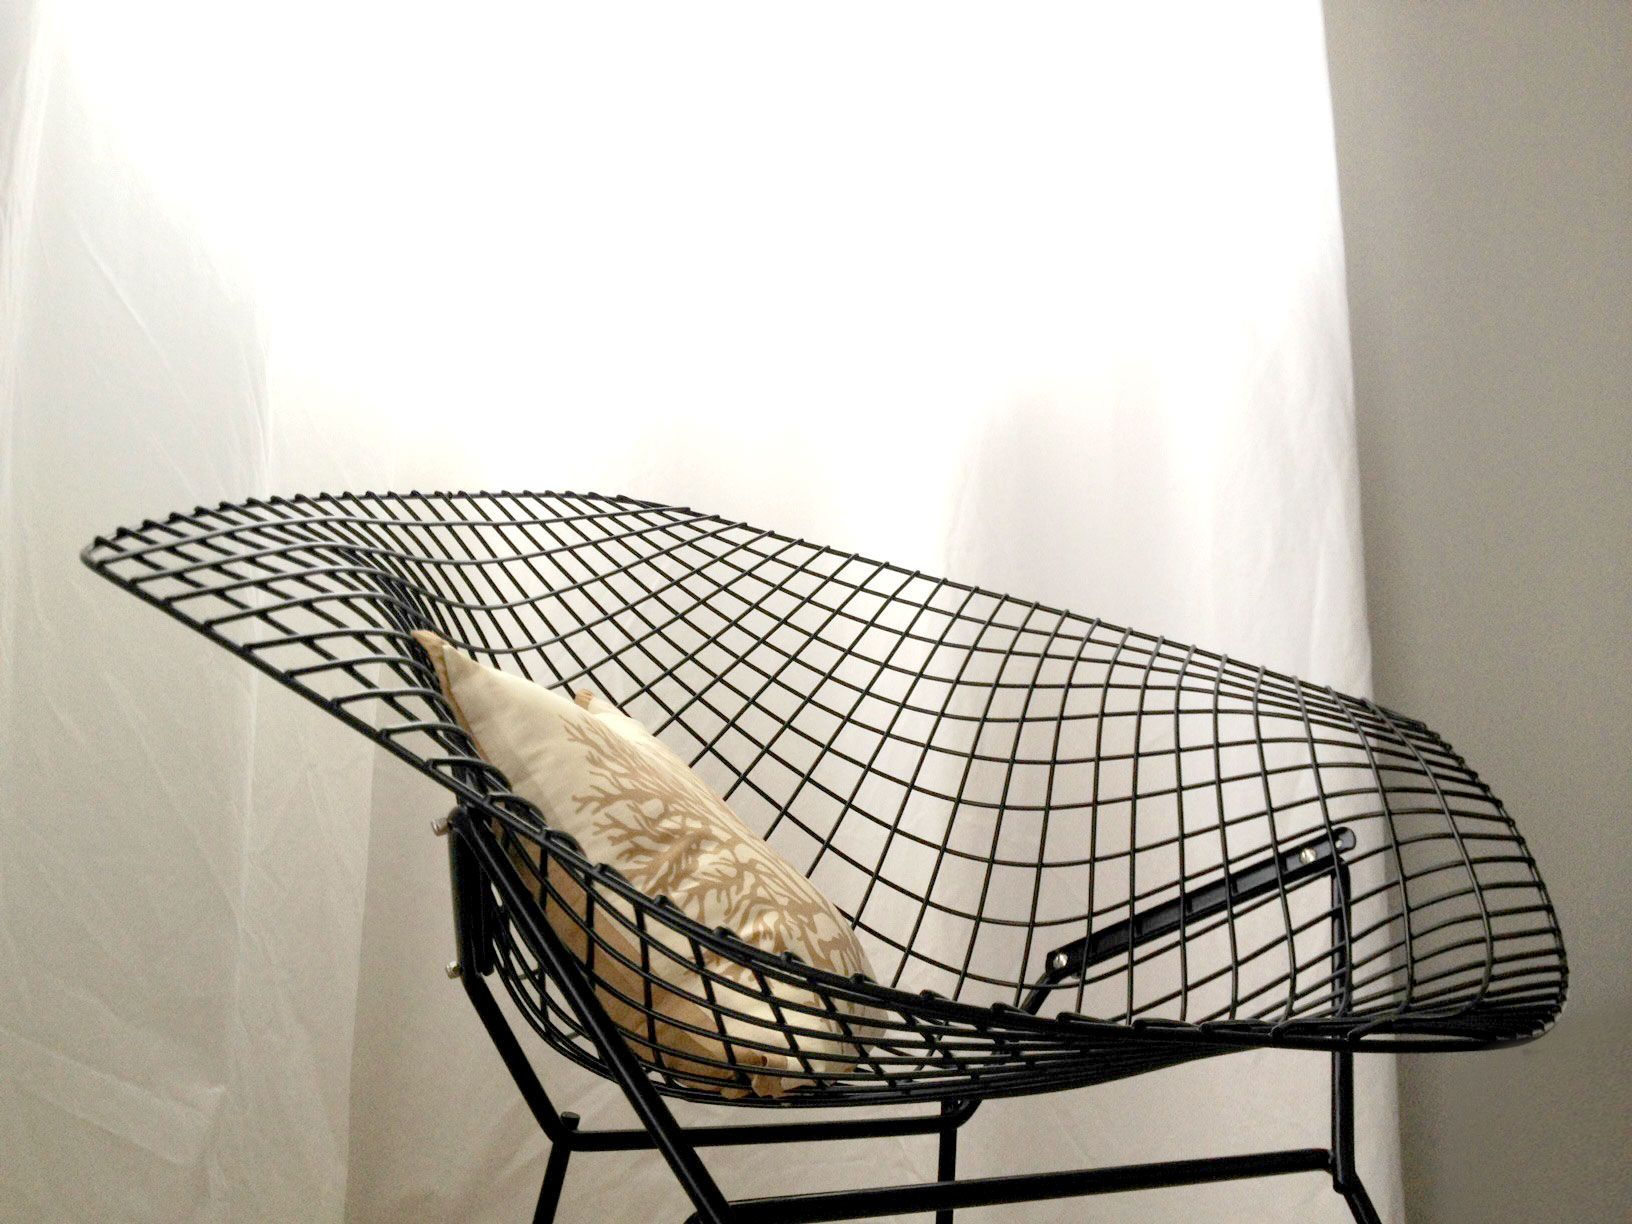 Bertoia diamond chair vintage - Our New Chair Vintage Bertoia Diamond Chair Black